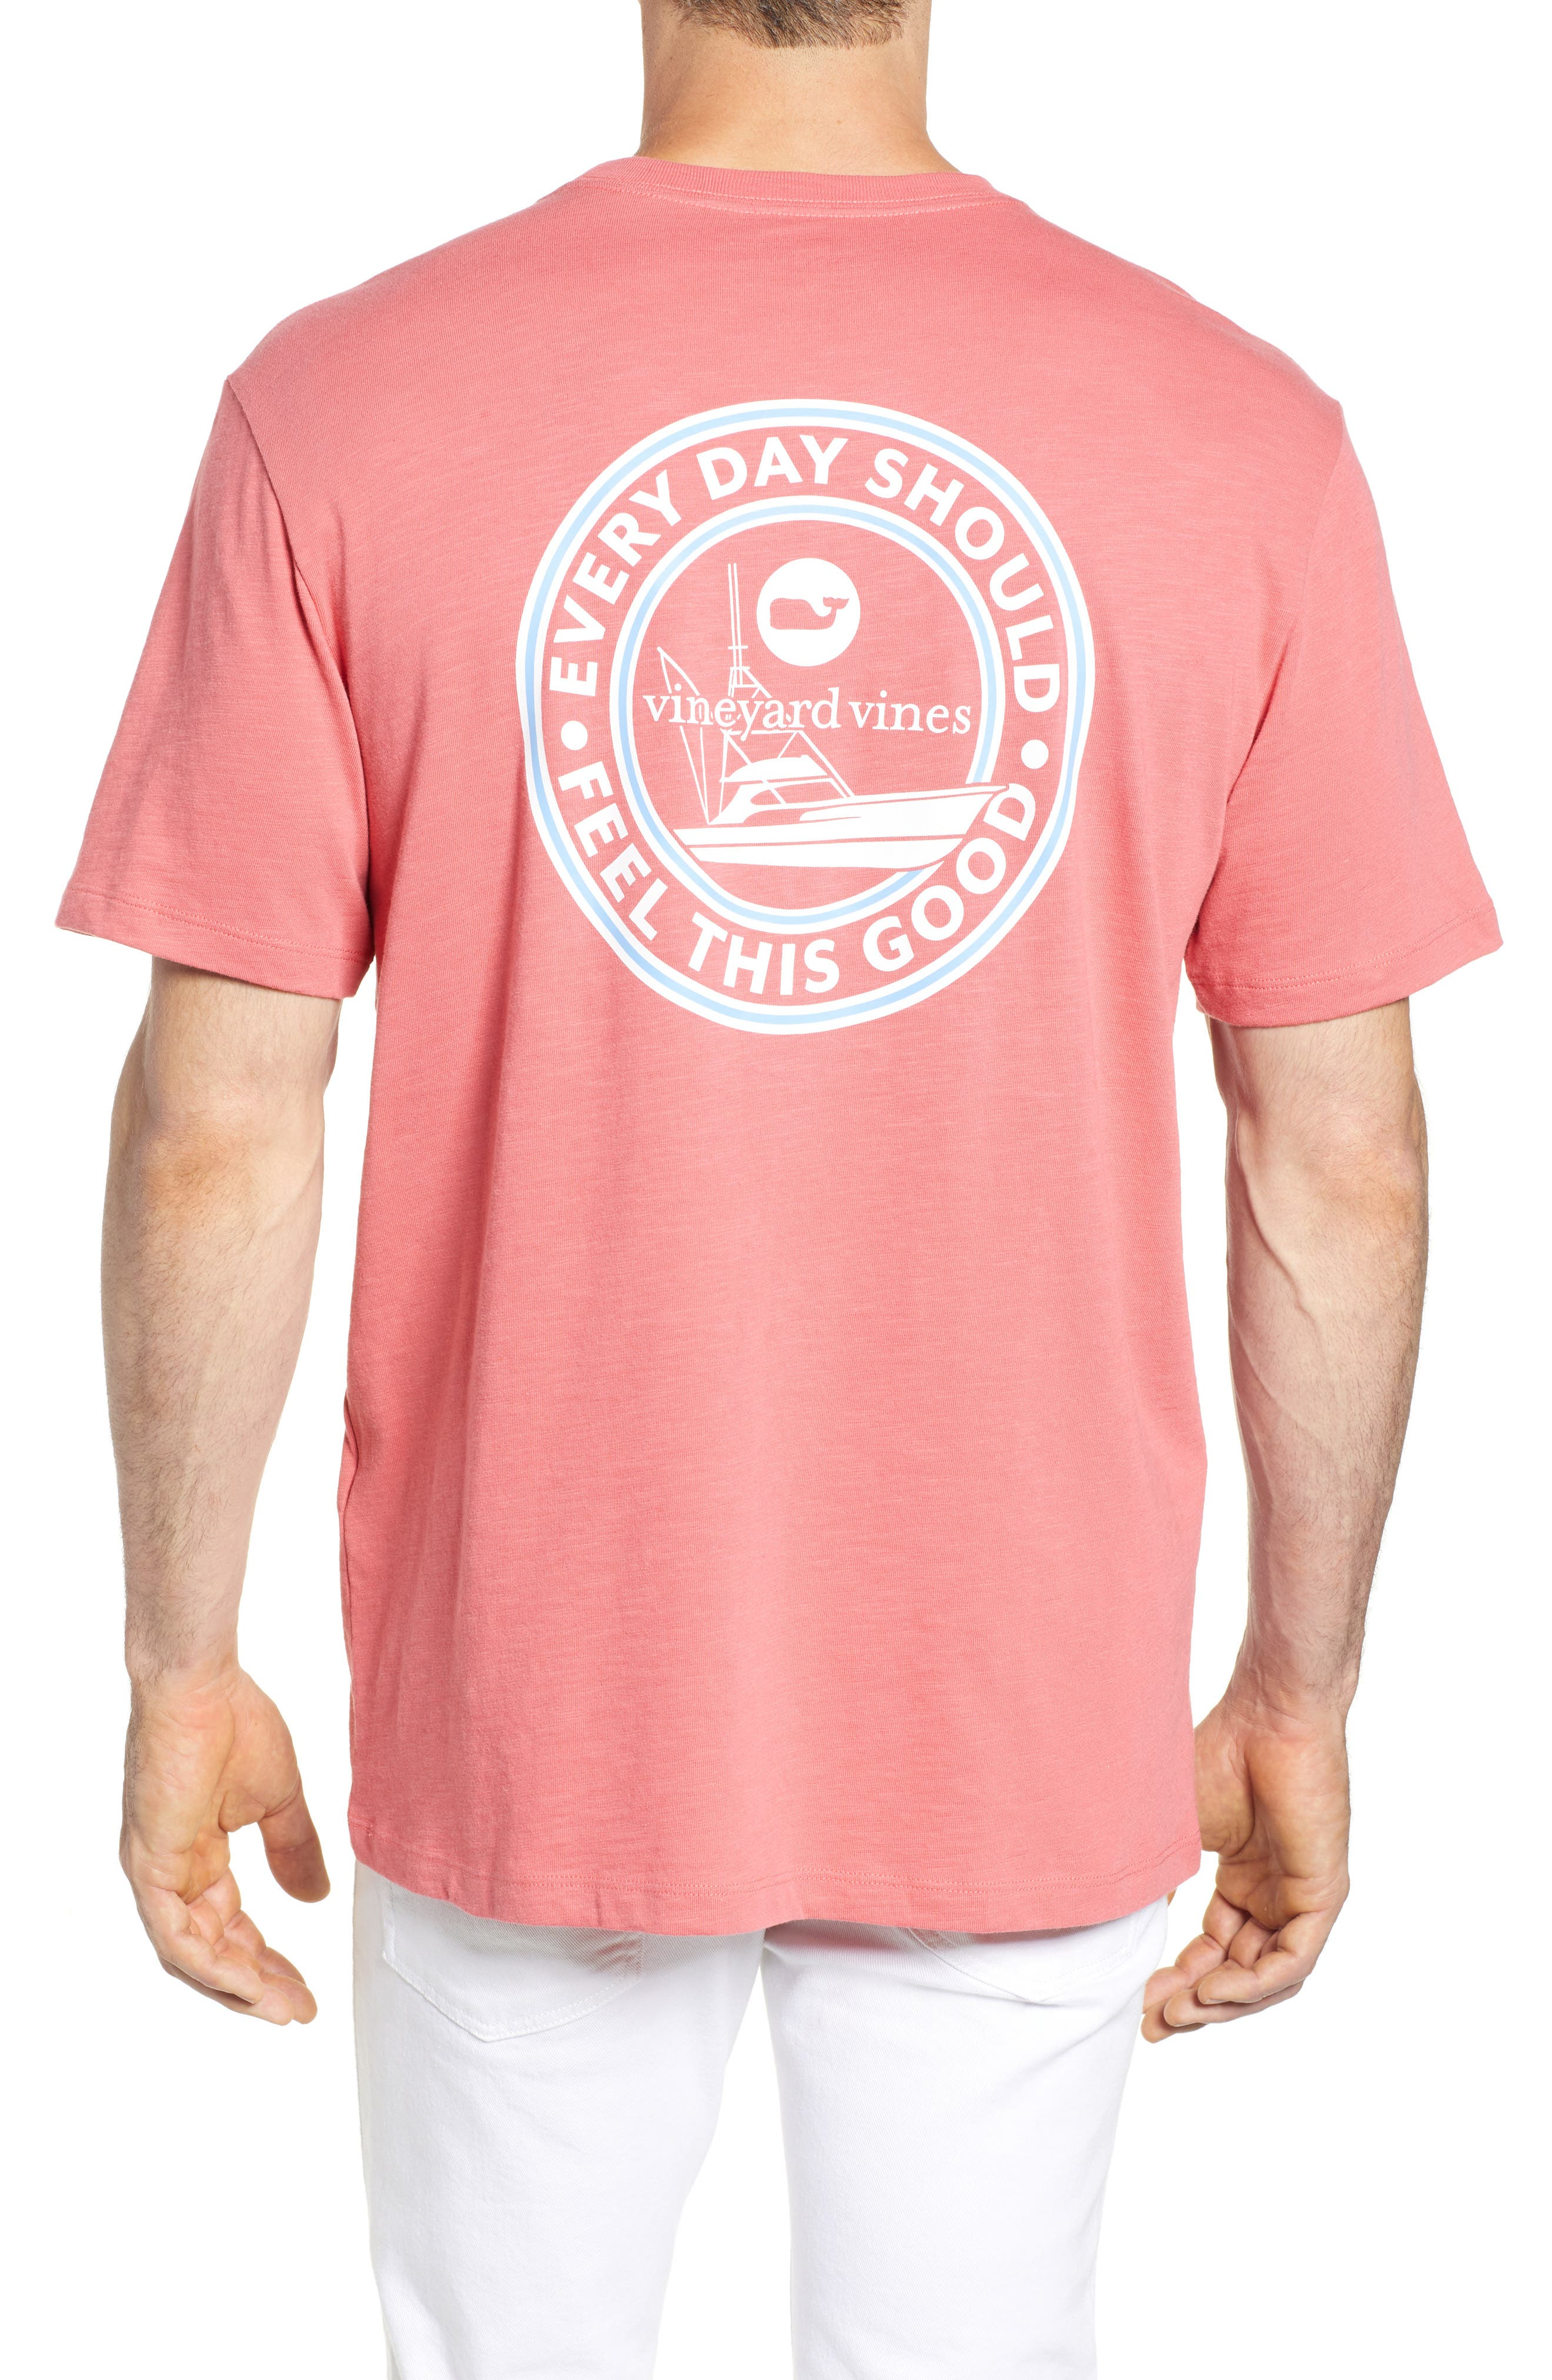 Every Day Should Feel This Good Pocket T-Shirt,                             Alternate thumbnail 2, color,                             628